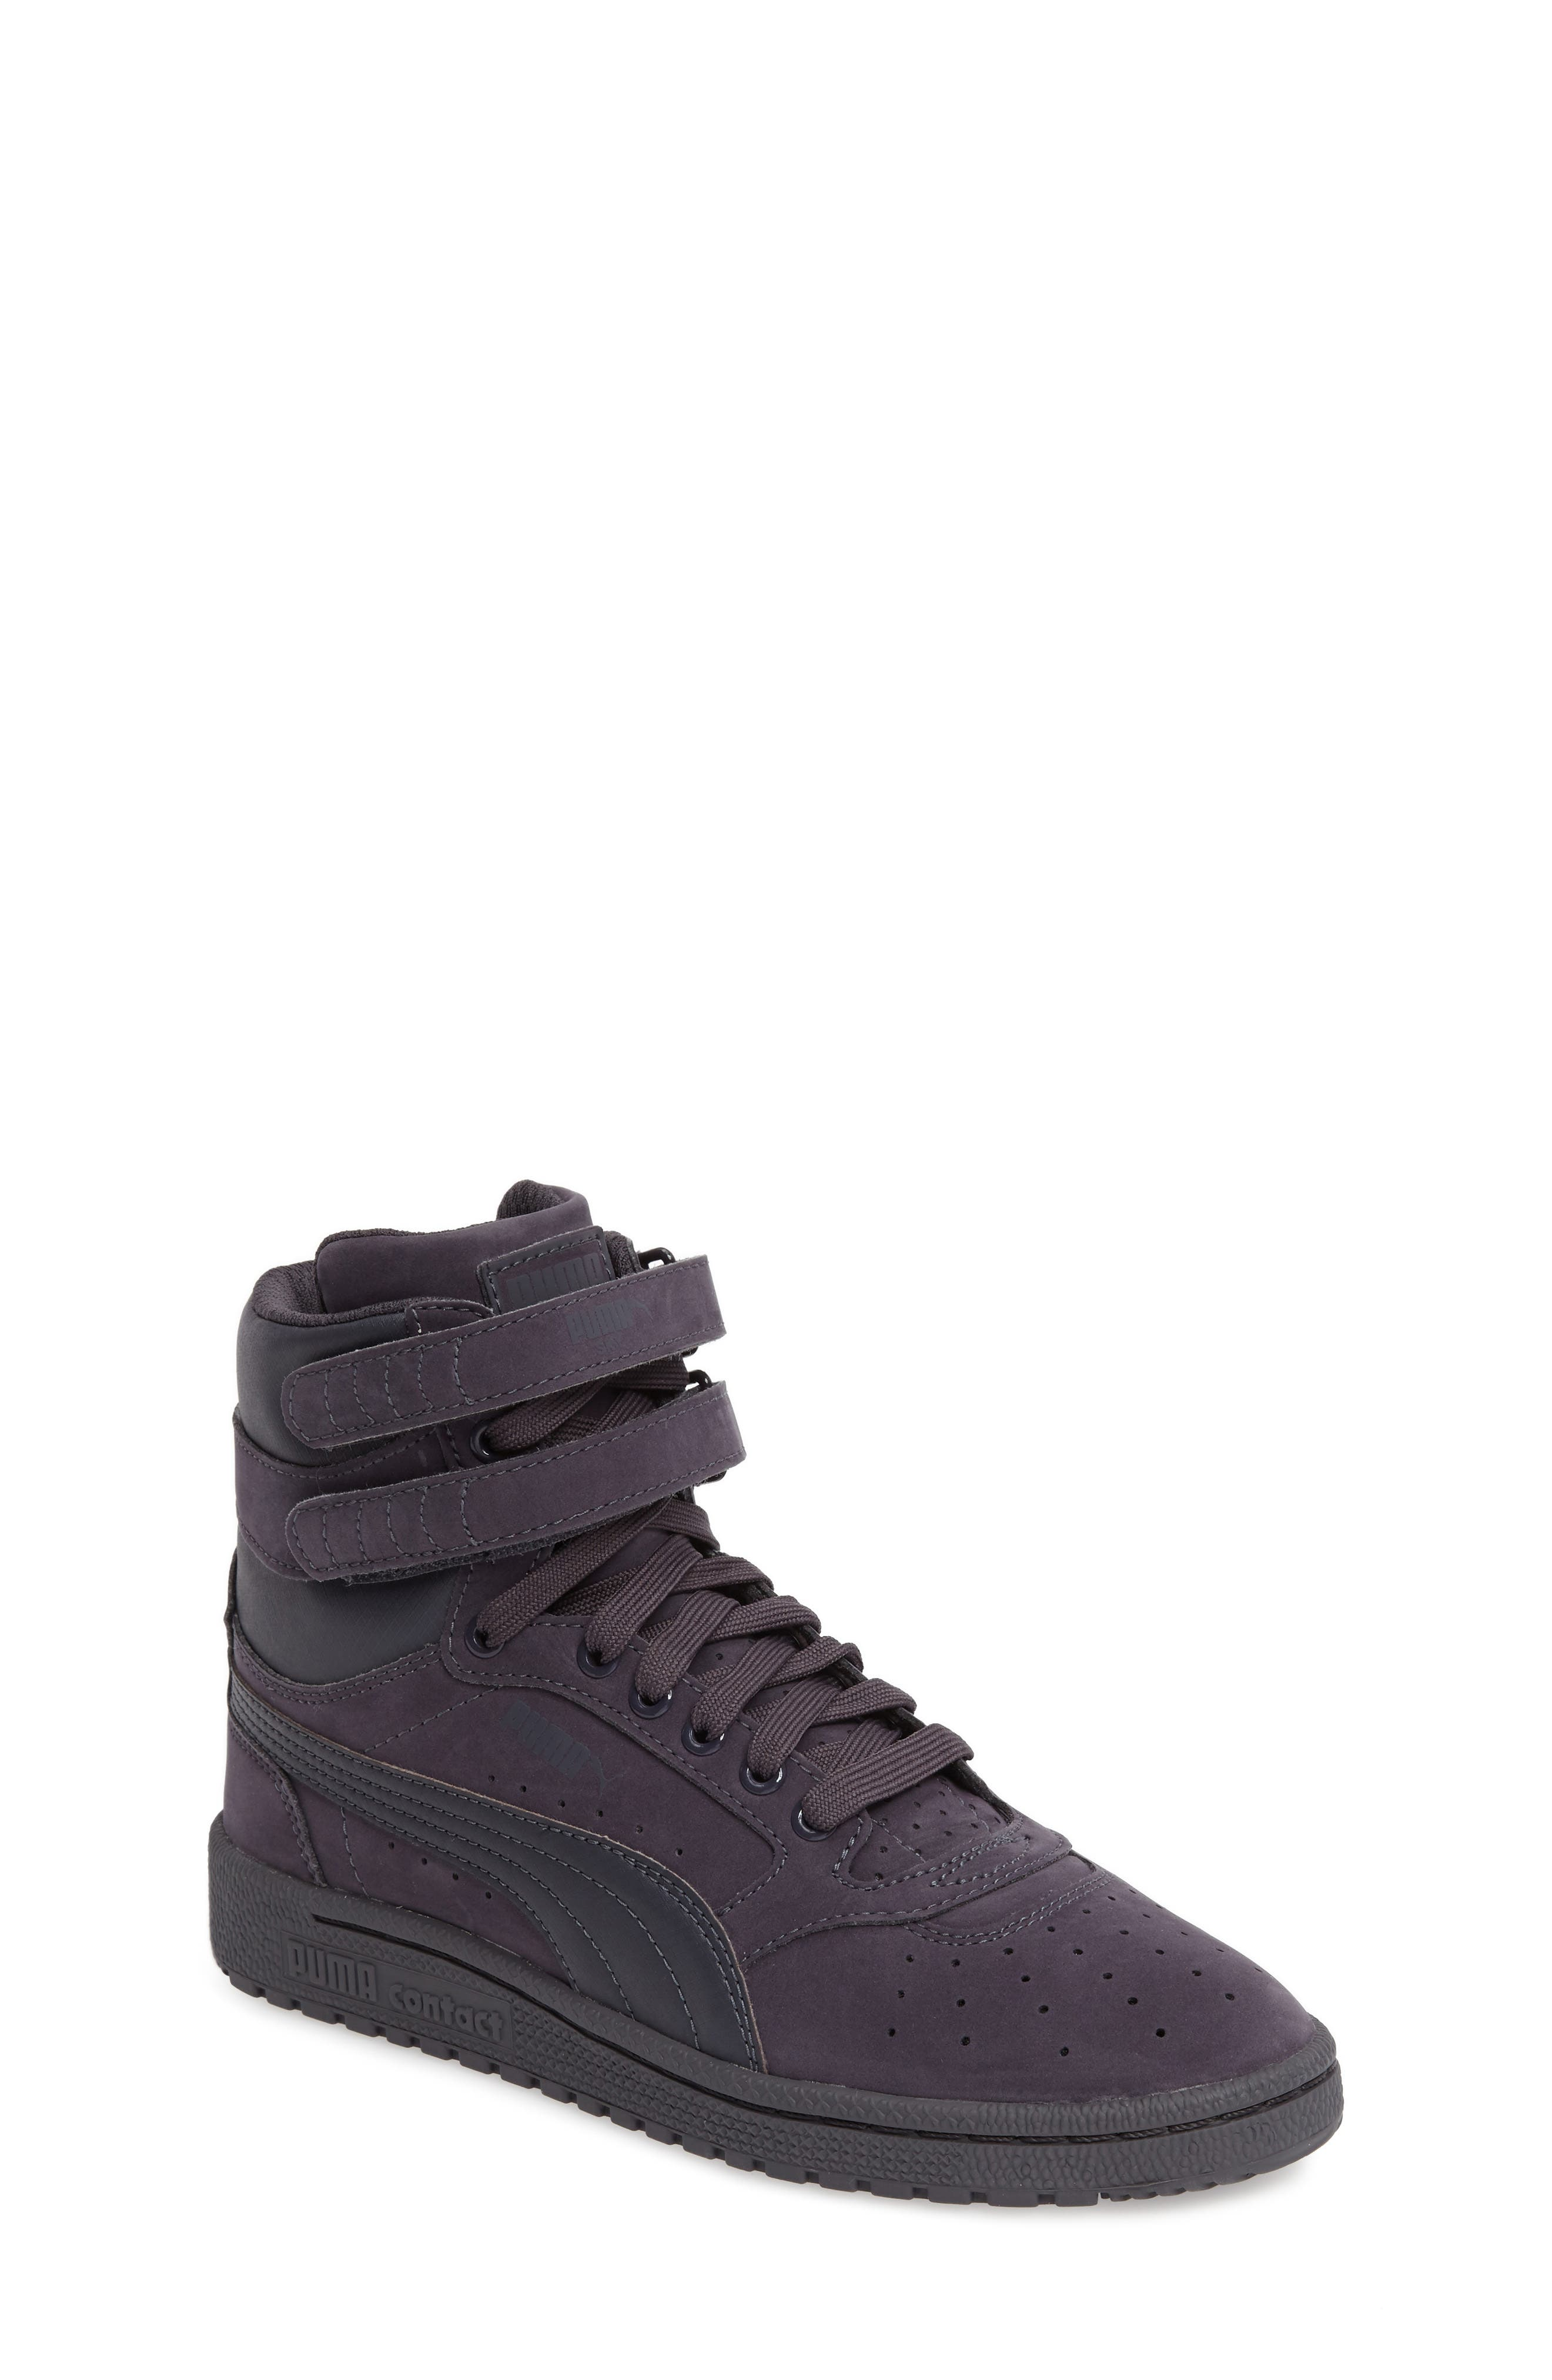 PUMA Ski II High Top Sneaker (Big Kid)